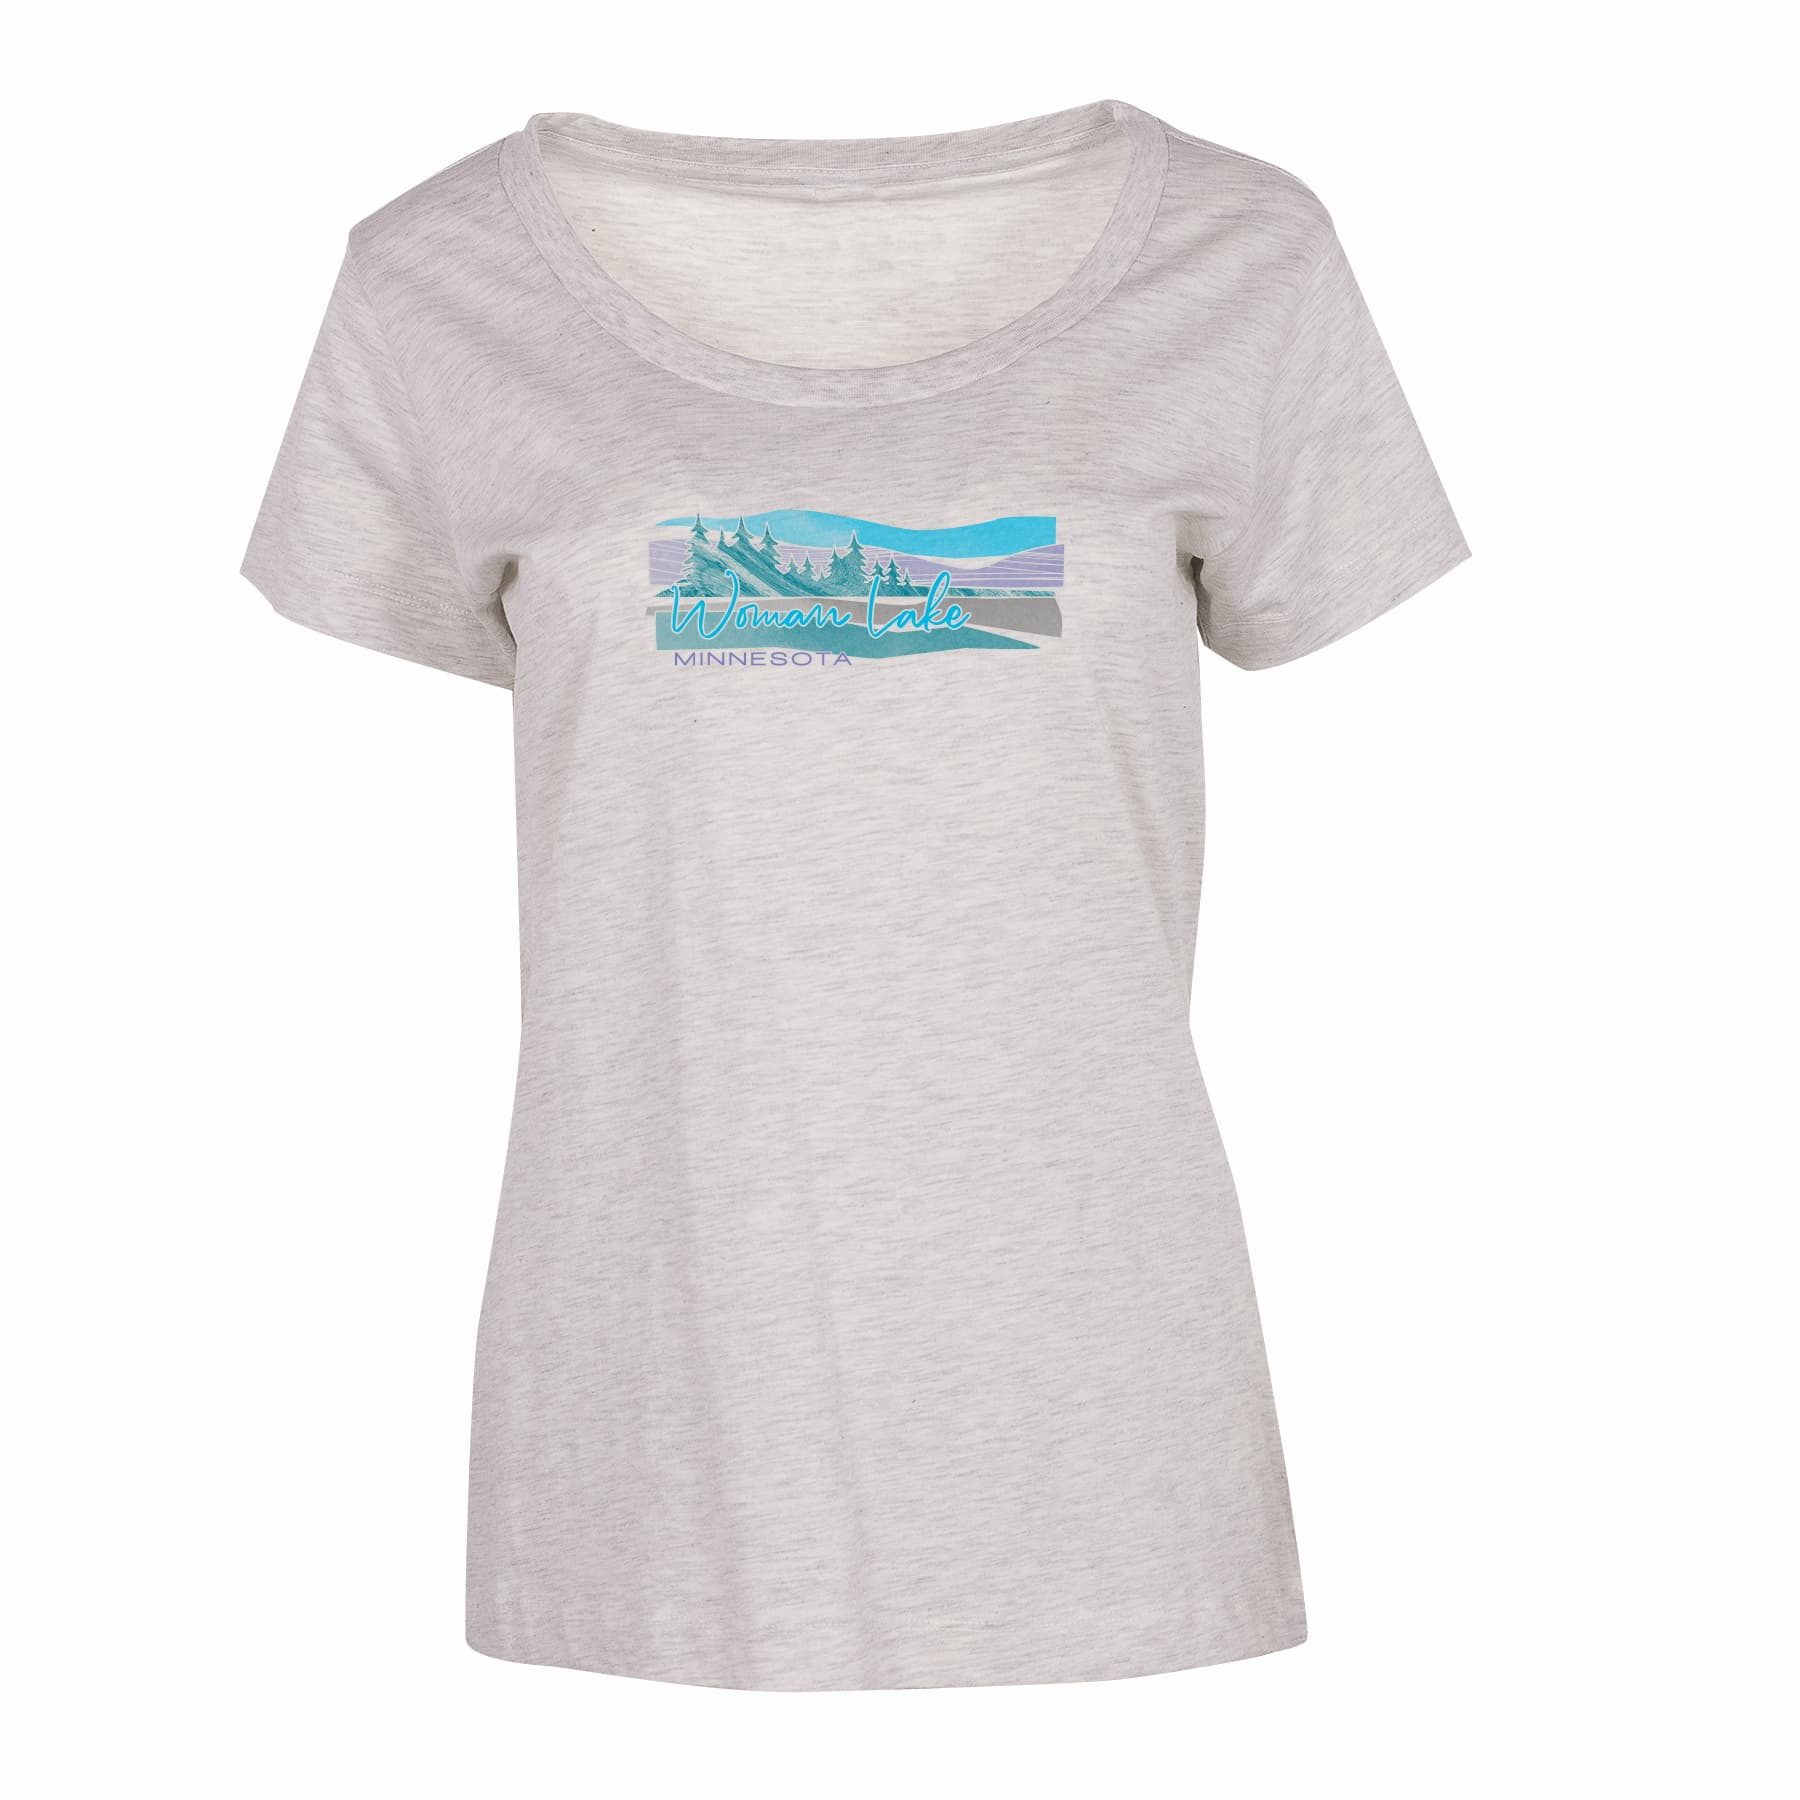 Women's Oatmeal Heather Short Sleeve Crew Neck Tee